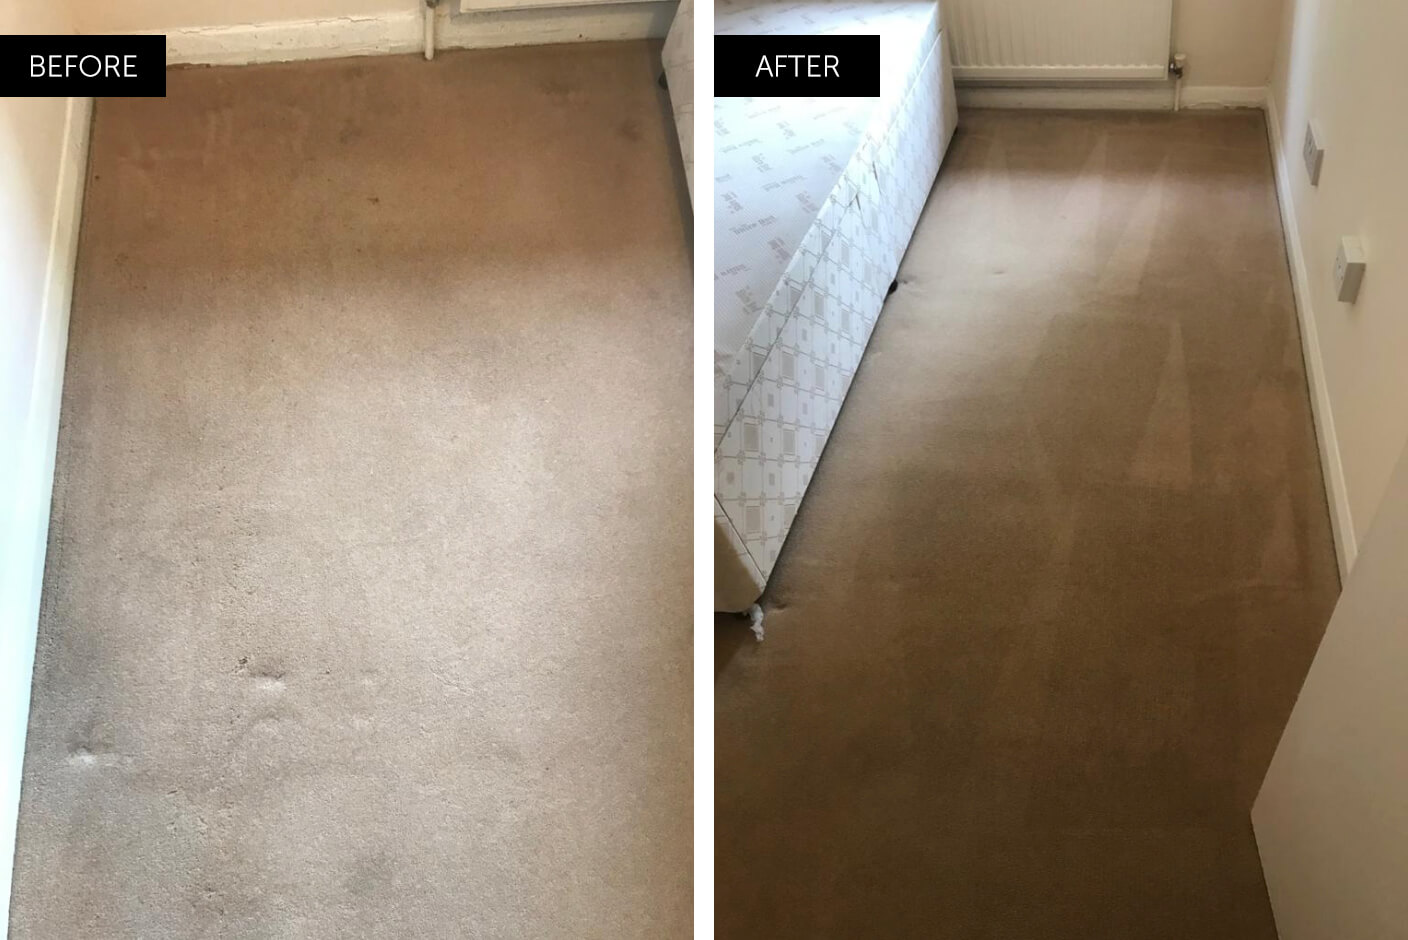 professional carpet cleaning before and after